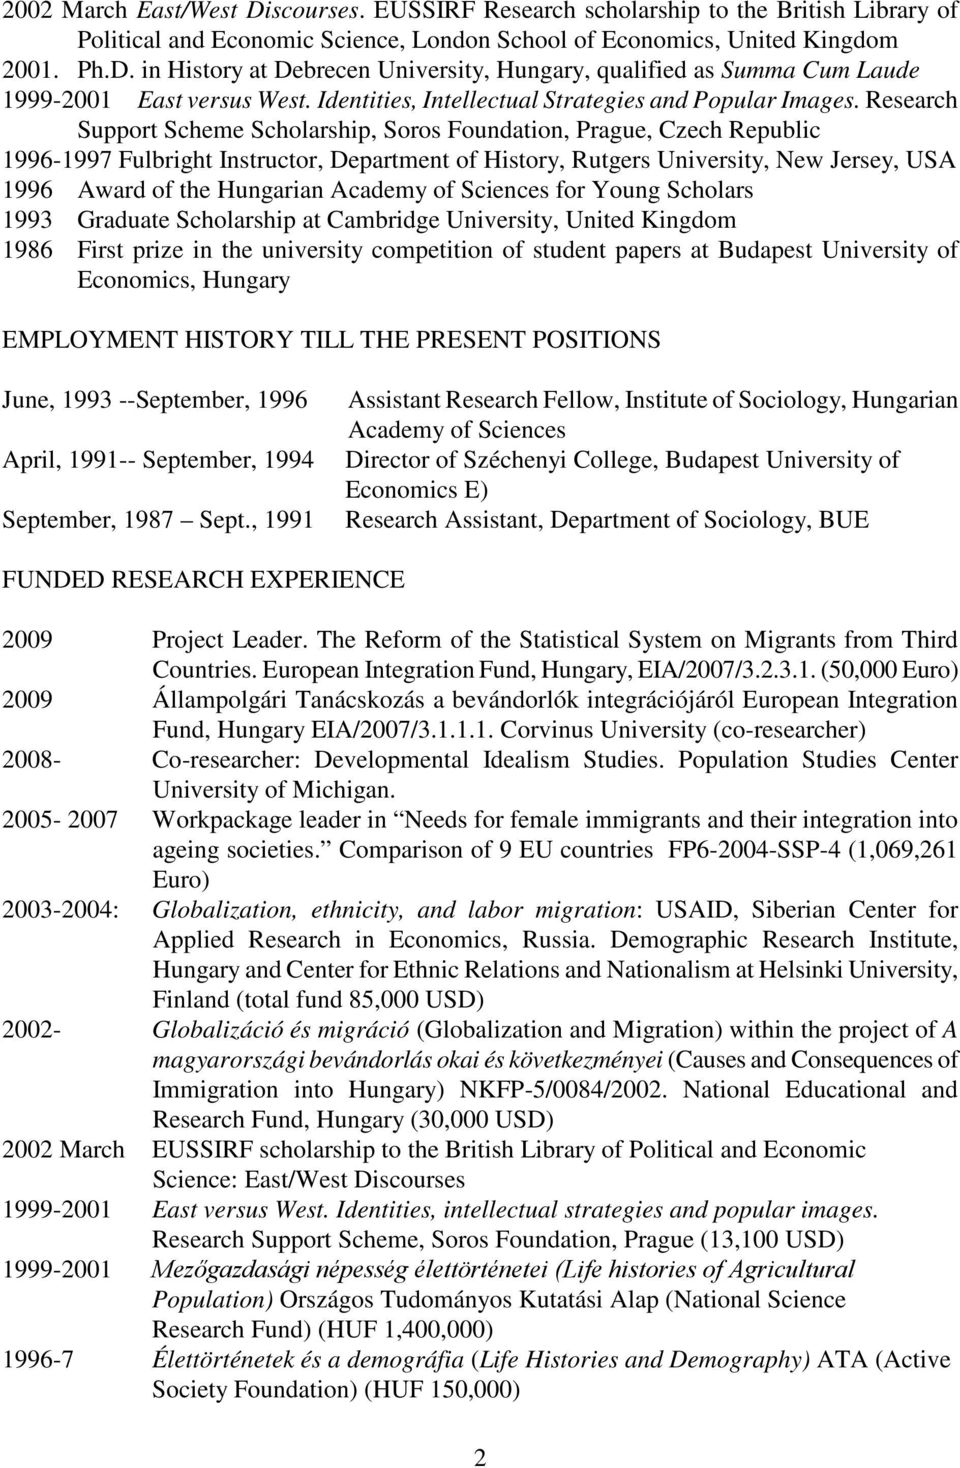 Research Support Scheme Scholarship, Soros Foundation, Prague, Czech Republic 1996-1997 Fulbright Instructor, Department of History, Rutgers University, New Jersey, USA 1996 Award of the Hungarian